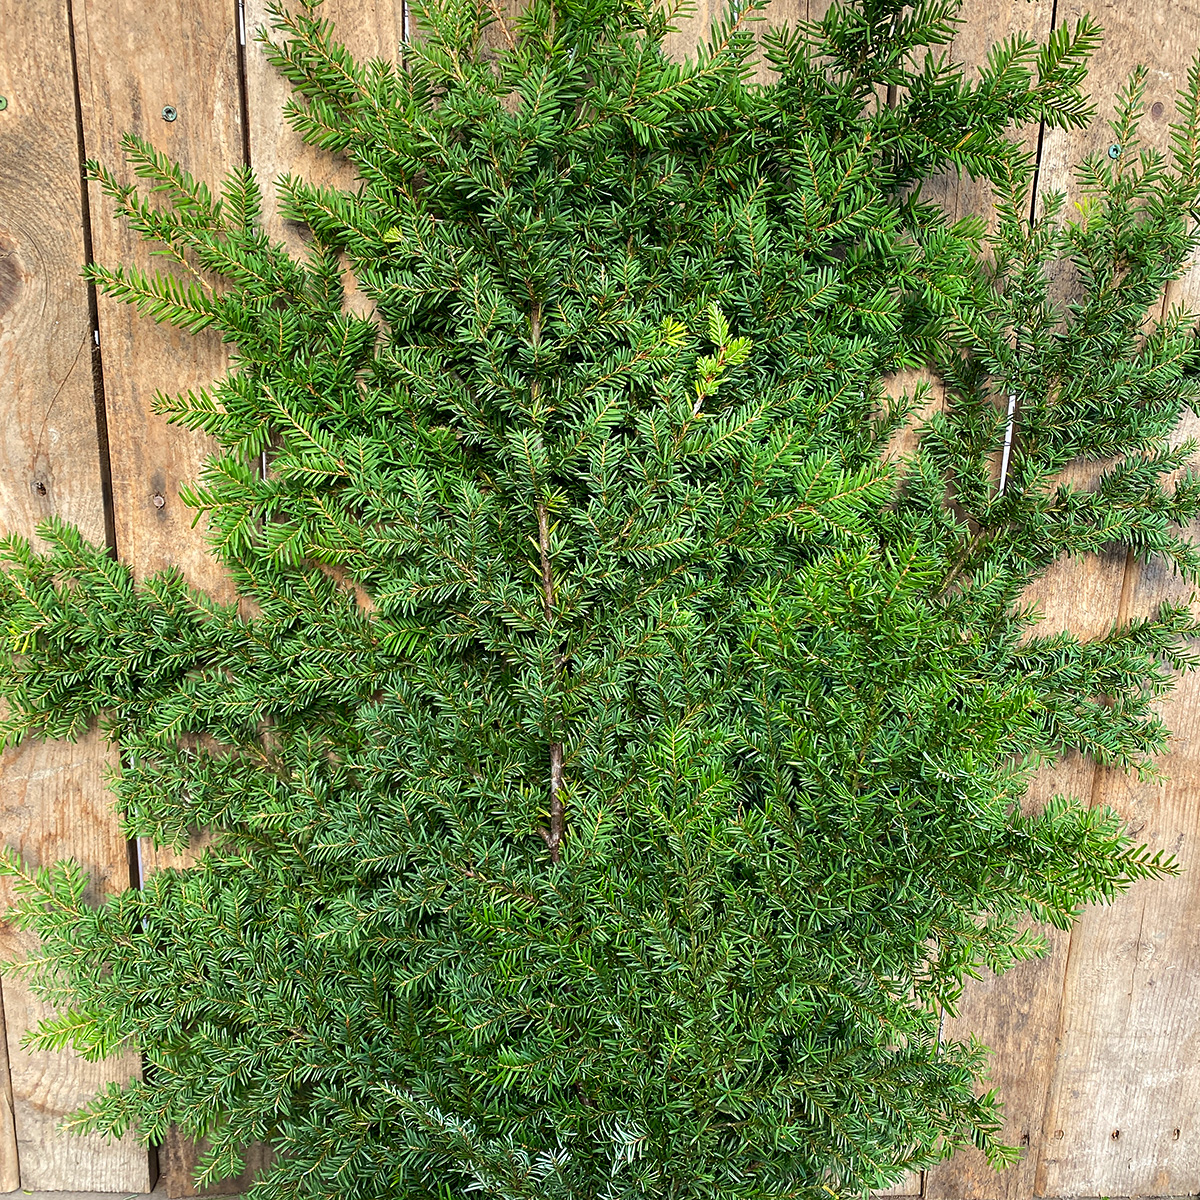 Christmas Greens - Hemlock Boughs